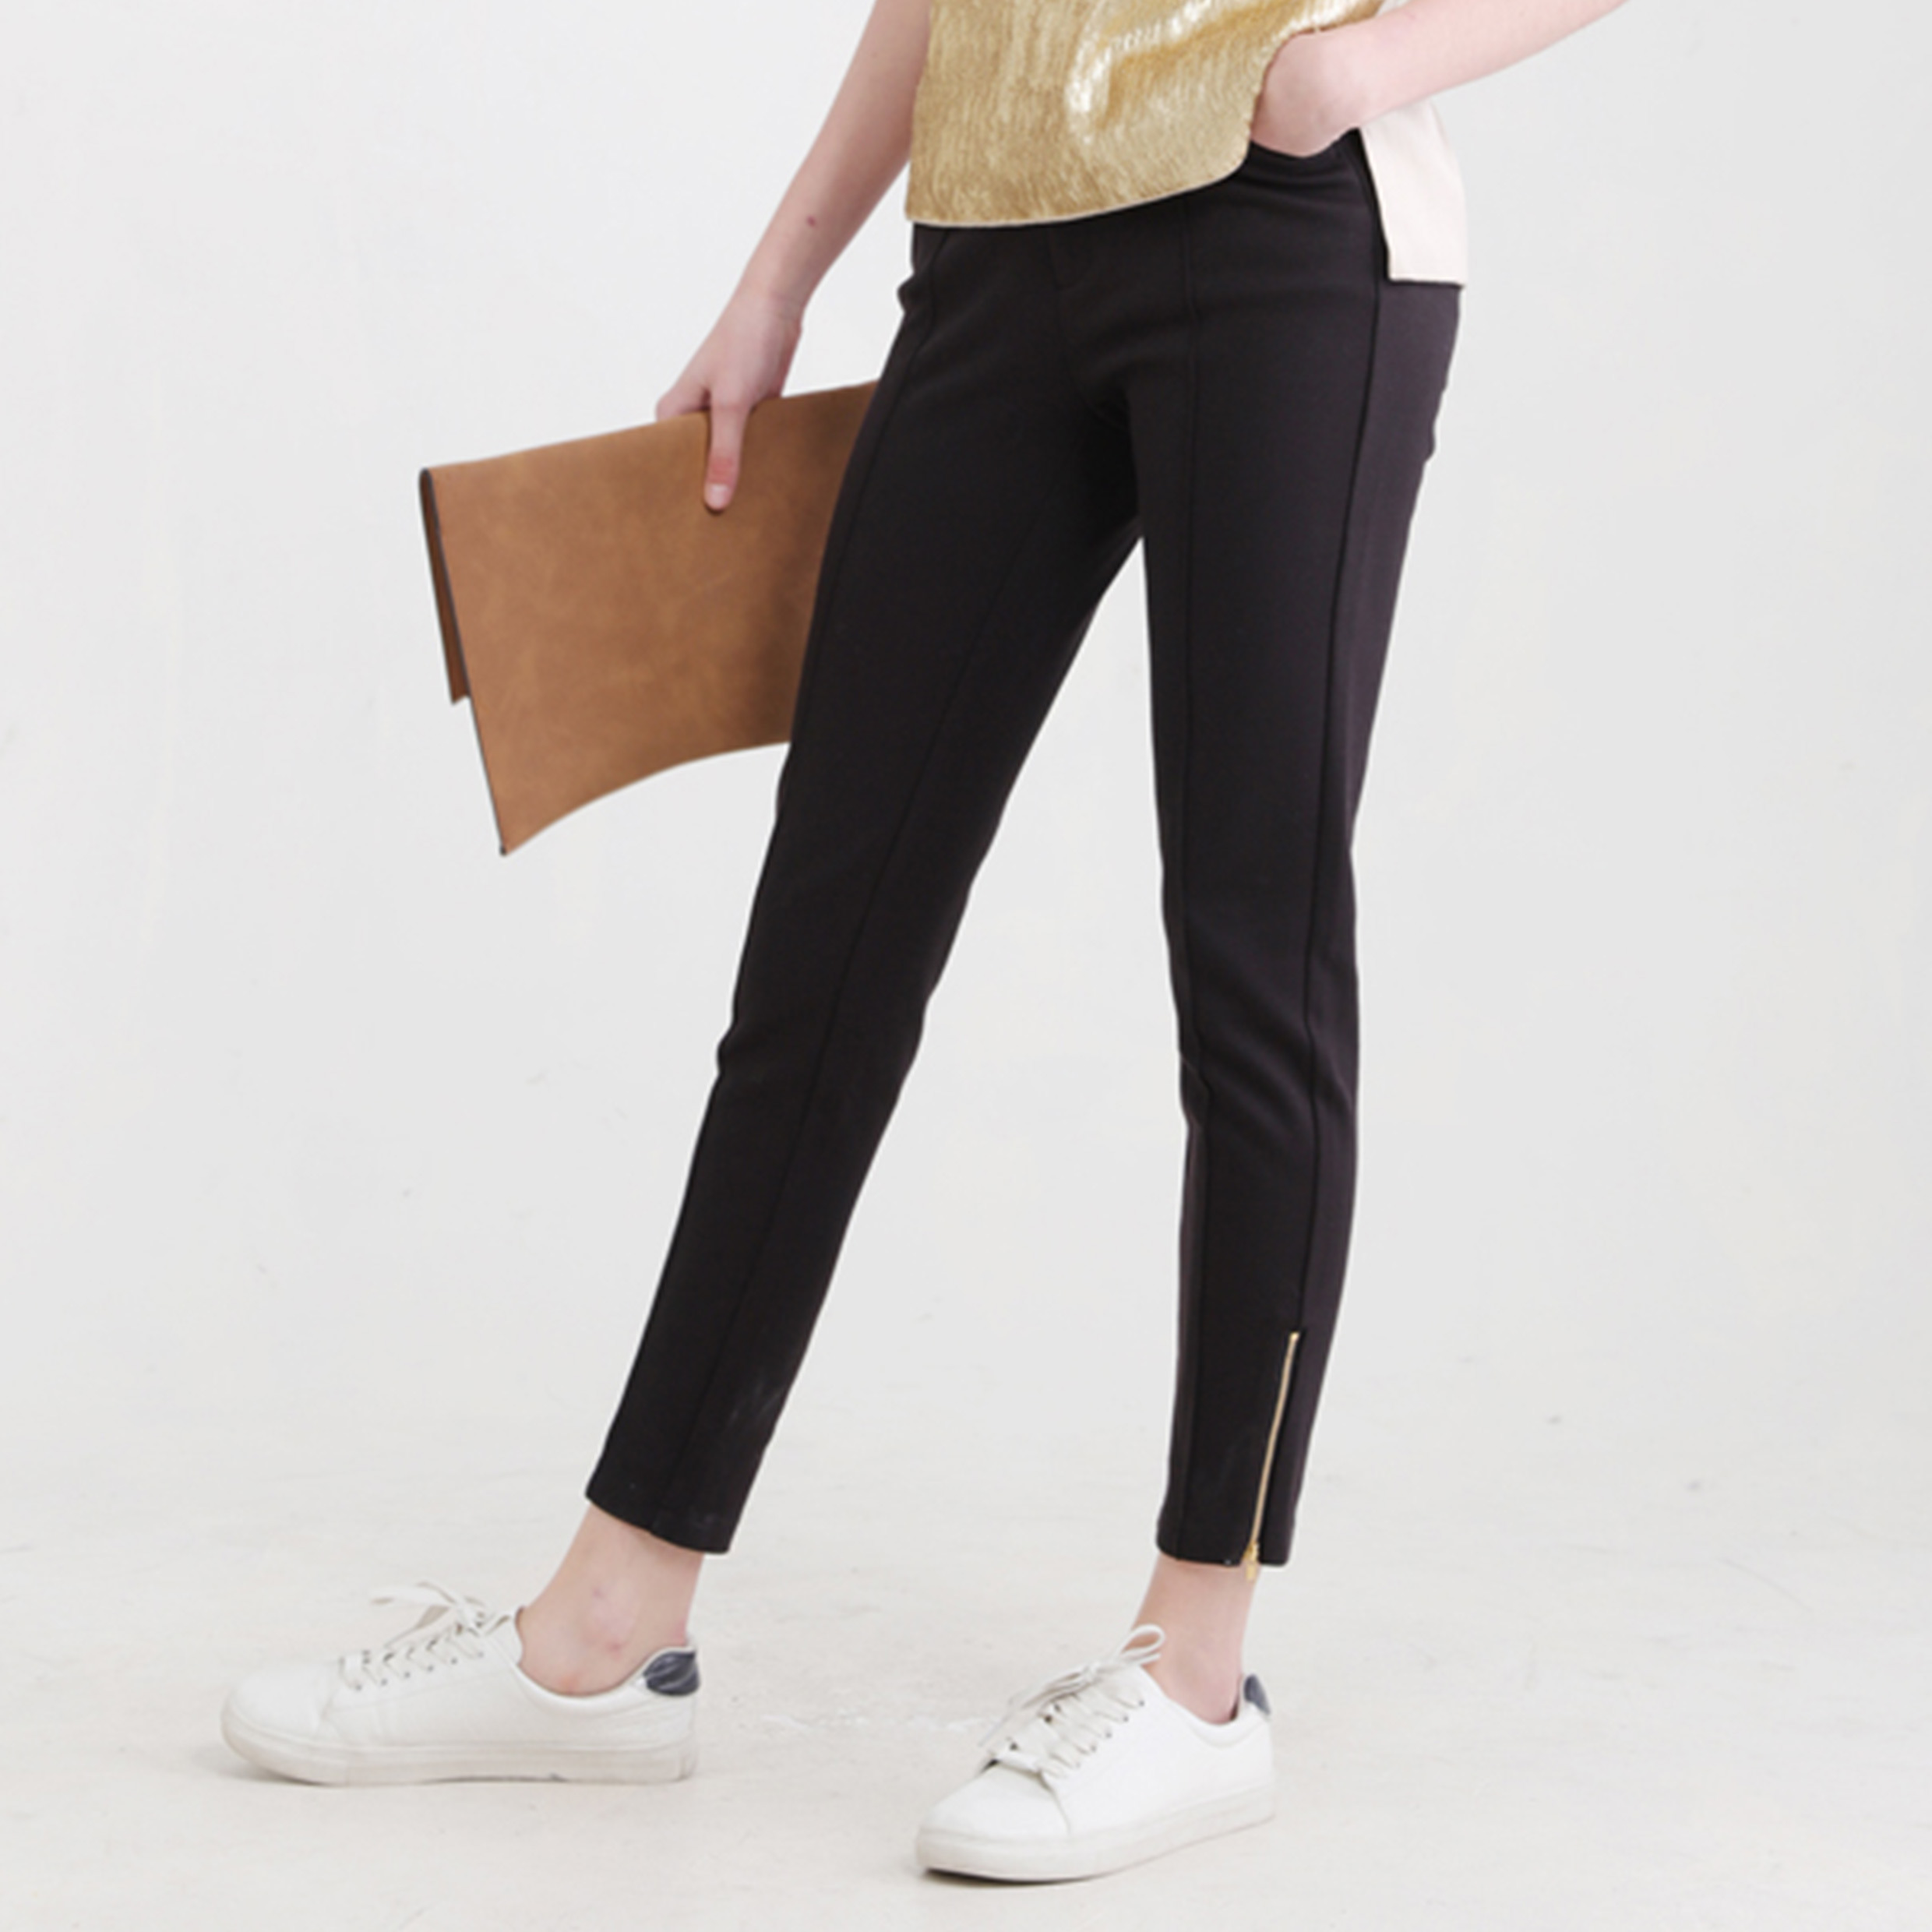 Ladies Fashion Casual Preppy Style Rib Jeggings Pants